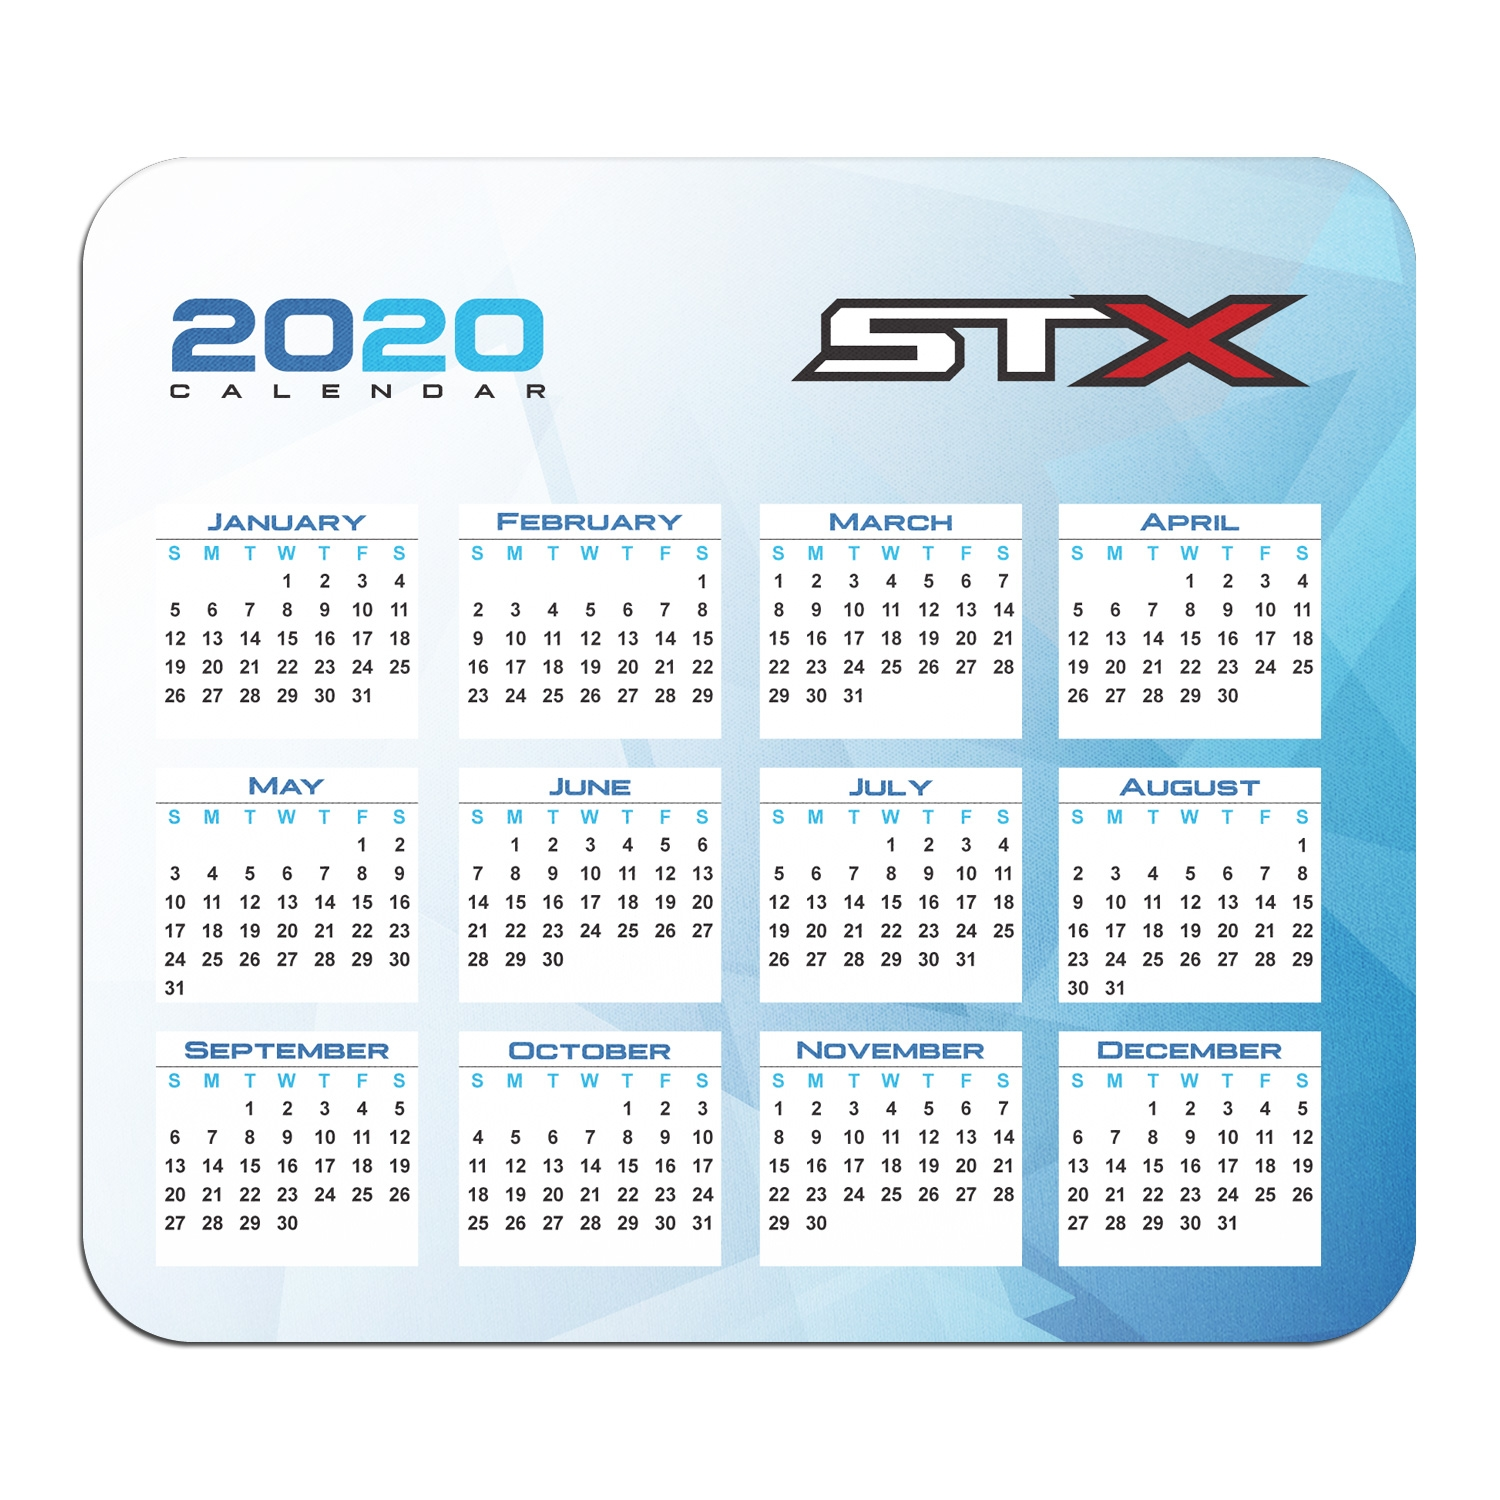 Ford STX 4x4 Year Calendar Graphic PC Mouse Pad